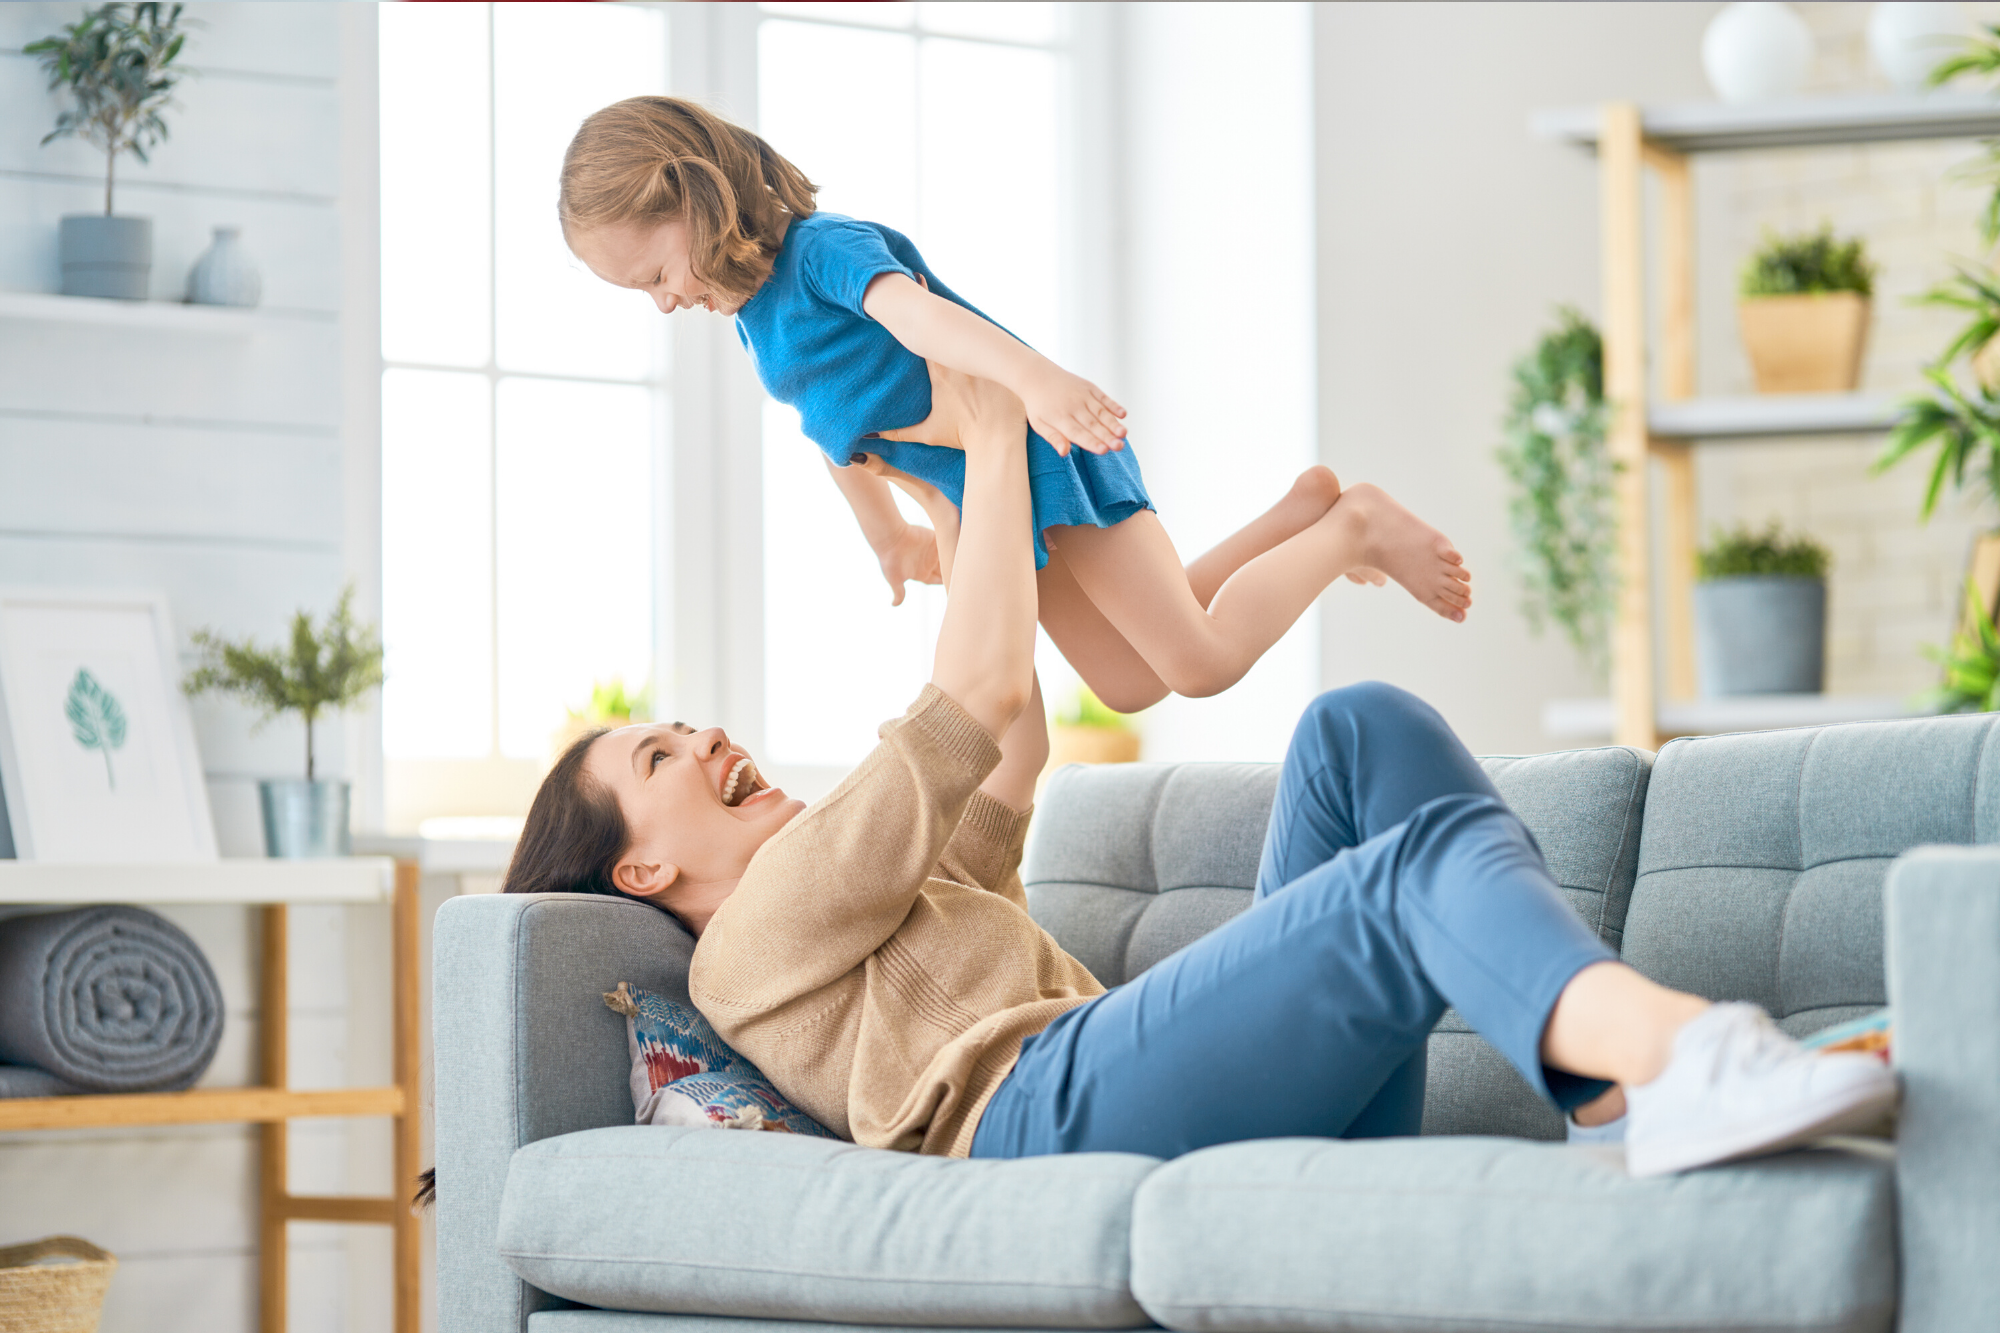 Child in a blue t-shirt and shorts being held up in the air by his mum